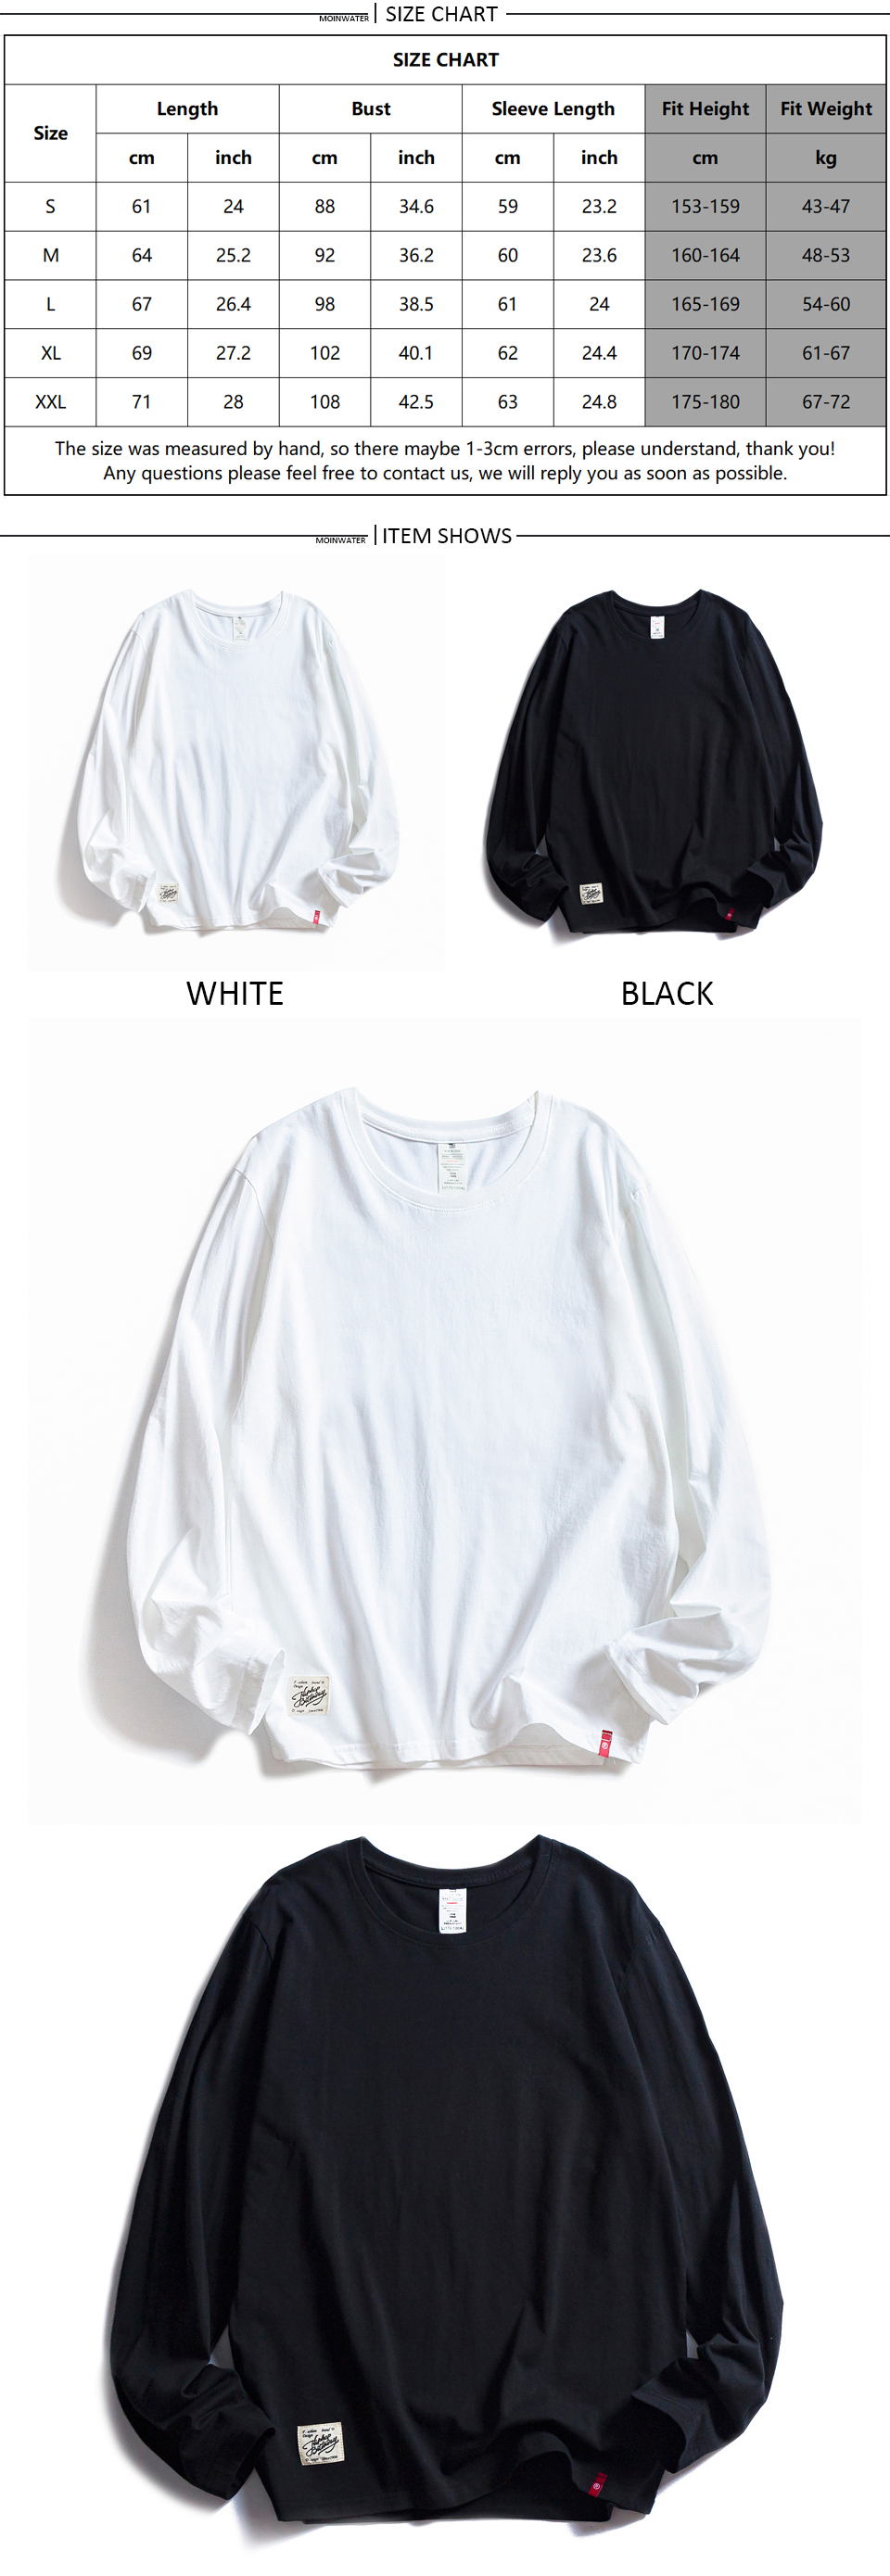 H28782e57dc694b0bade025c5d6a7130a5 - MOINWATER Women O-neck Long Sleeve T shirts Lady White Cotton Tops Female Soft Casual Tees Women's Black T-shirt MLT1901